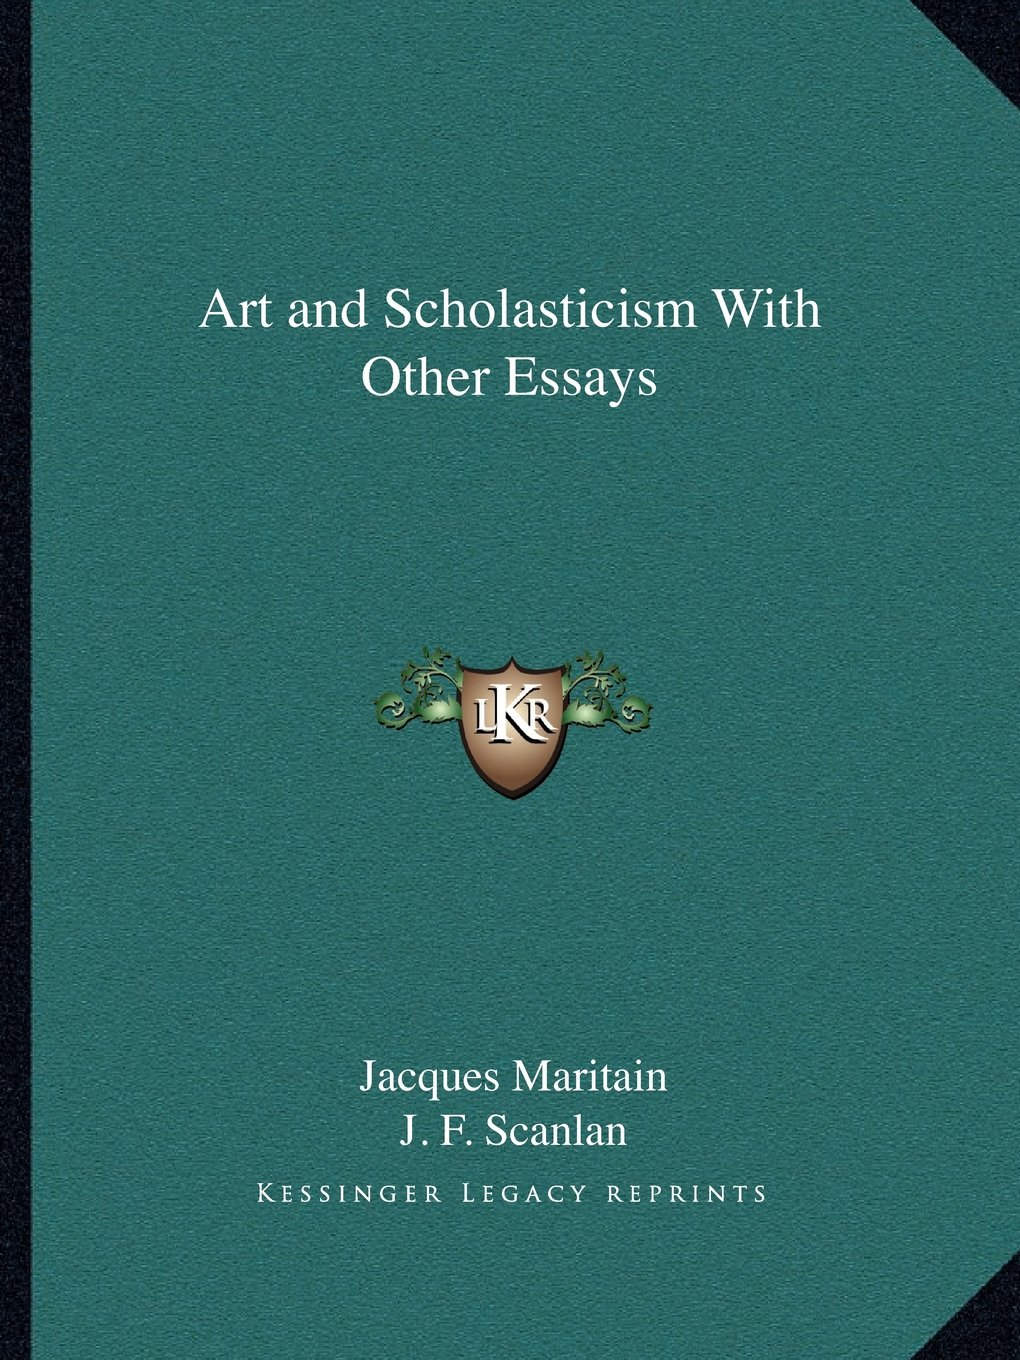 009 Art And Scholasticism With Other Essays Essay Example Impressive Full